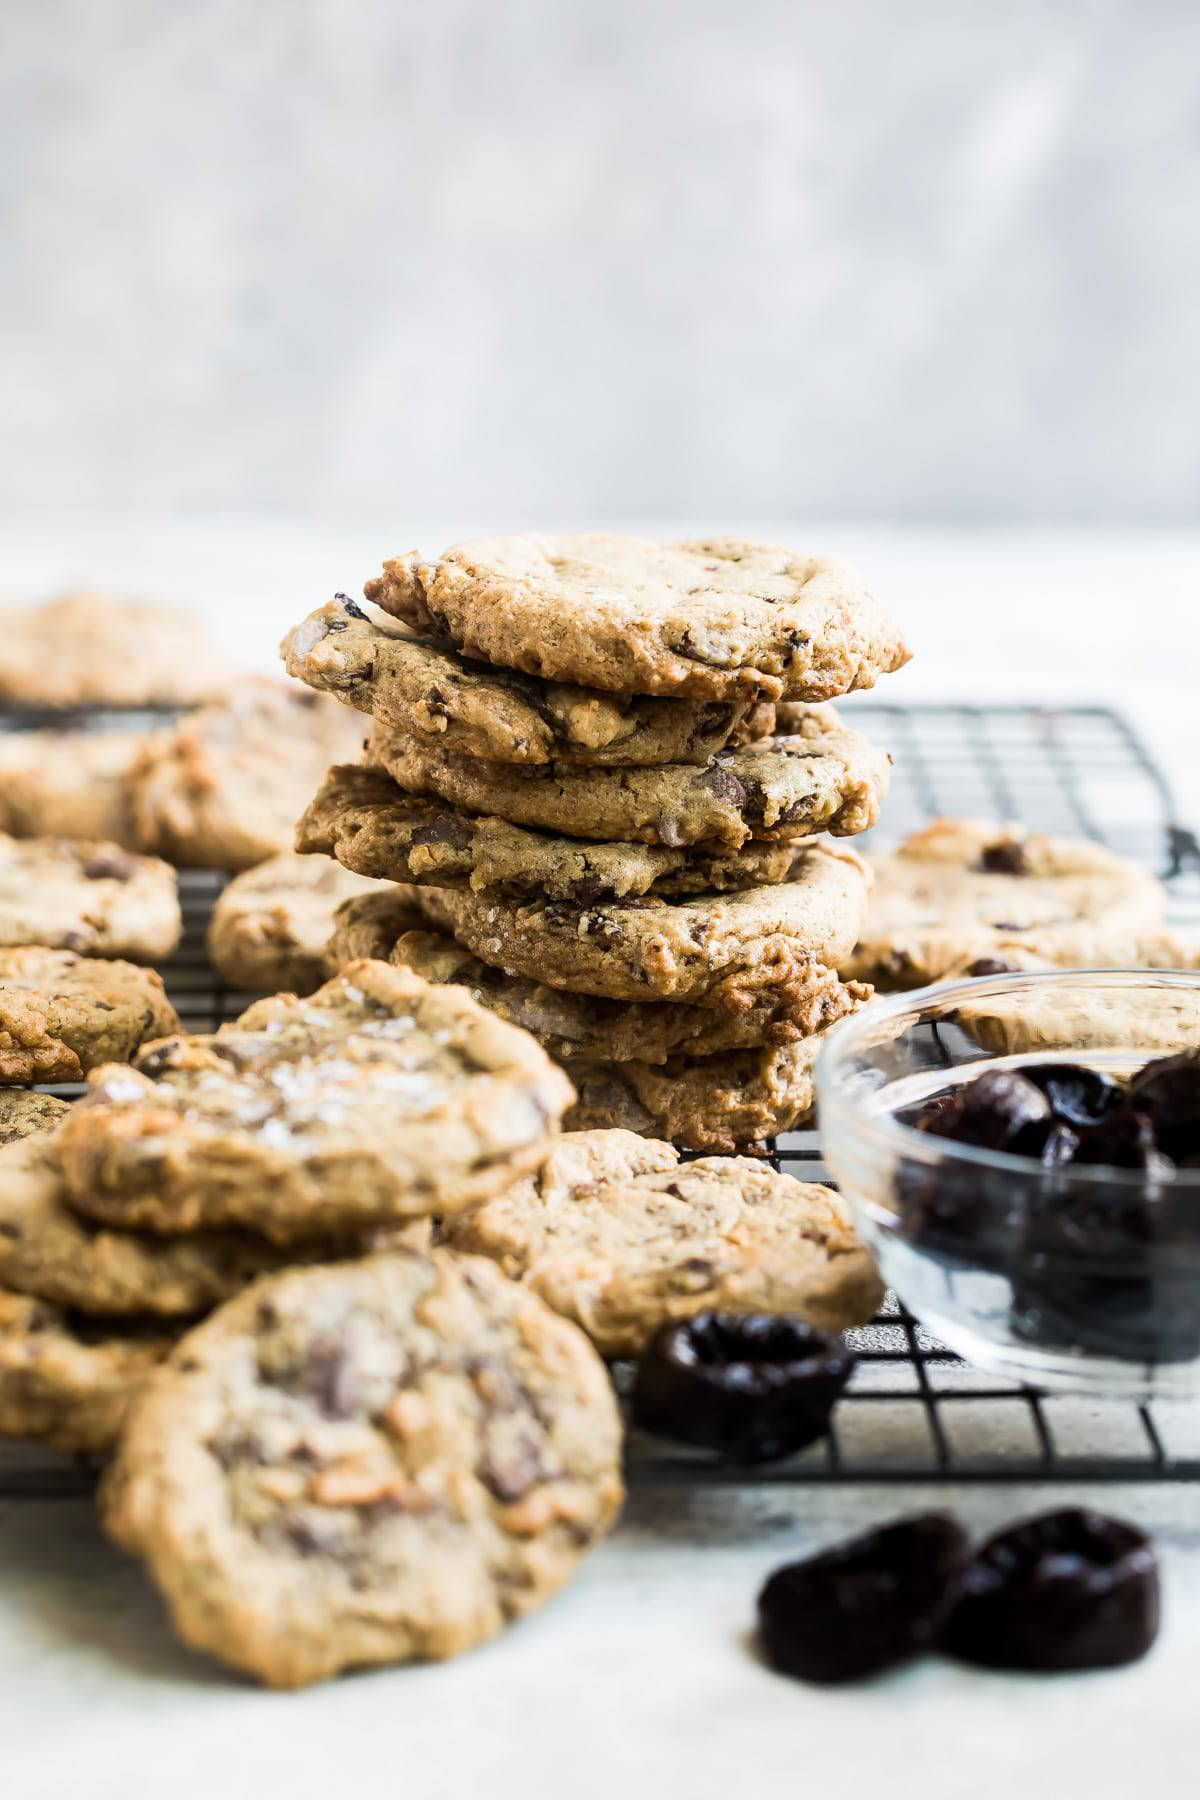 Chocolate Chip Cookies with California Prune Puree